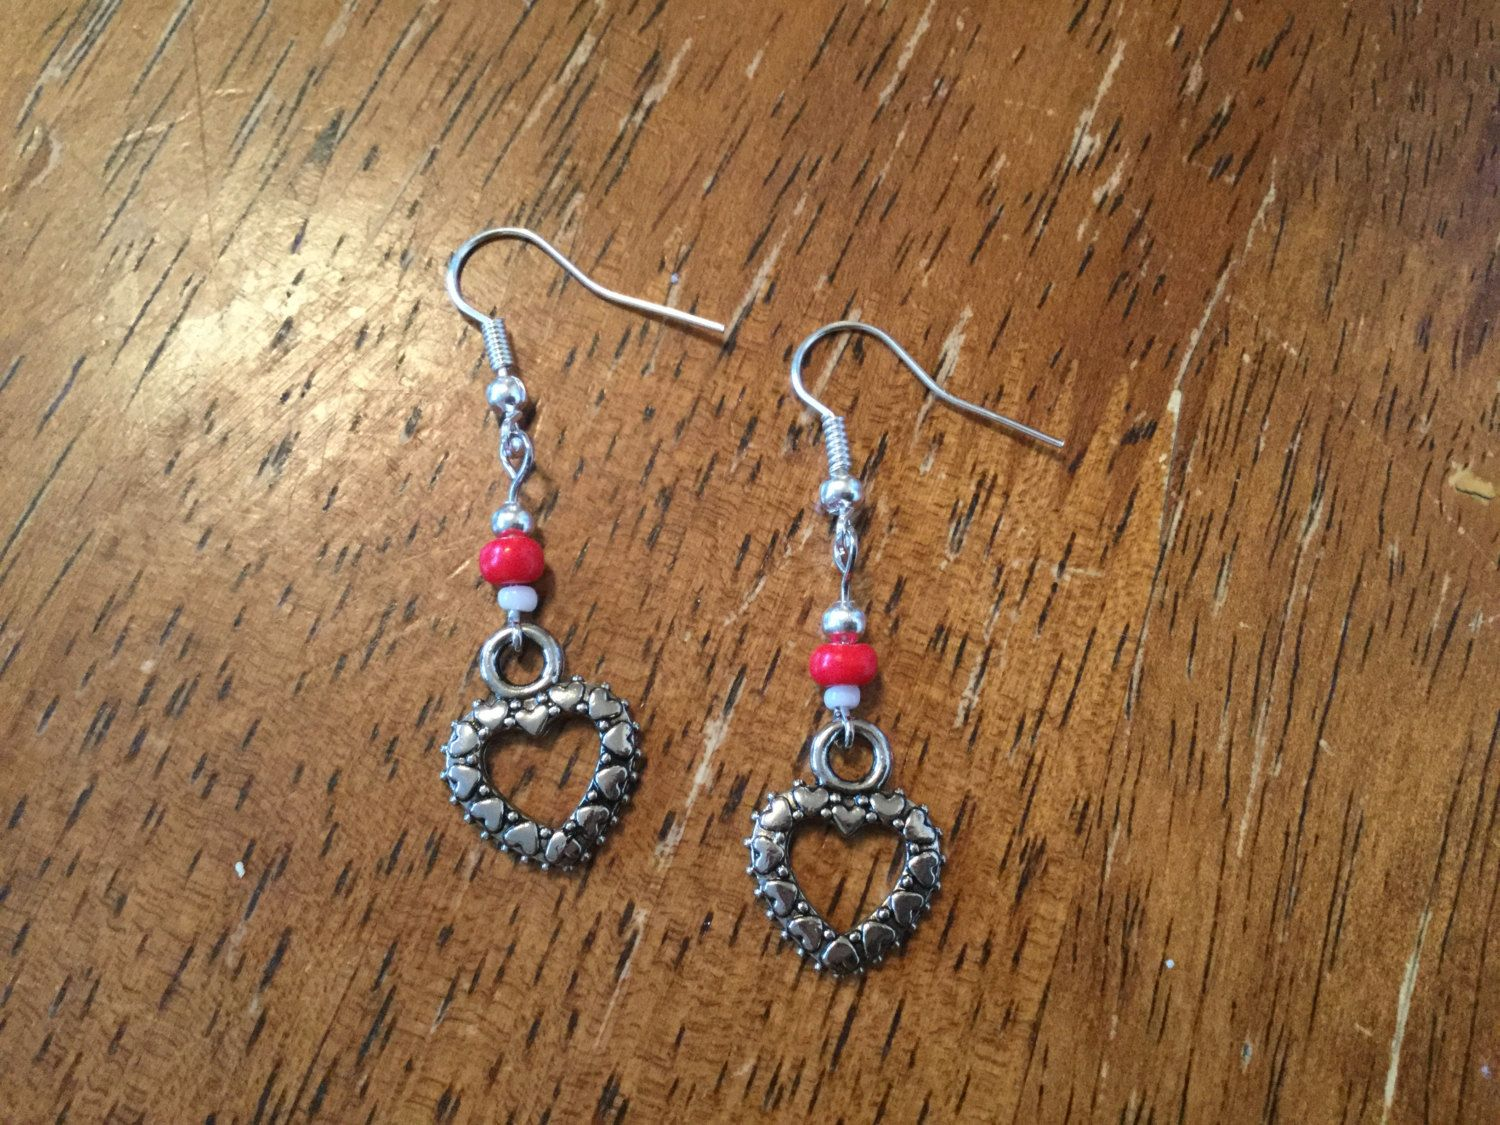 Handmade Beaded Earrings - Metal Hollow Hearts with Small Multi-Heart Shaped Border, Red and White Glass Beads by cemFLORAL on Etsy